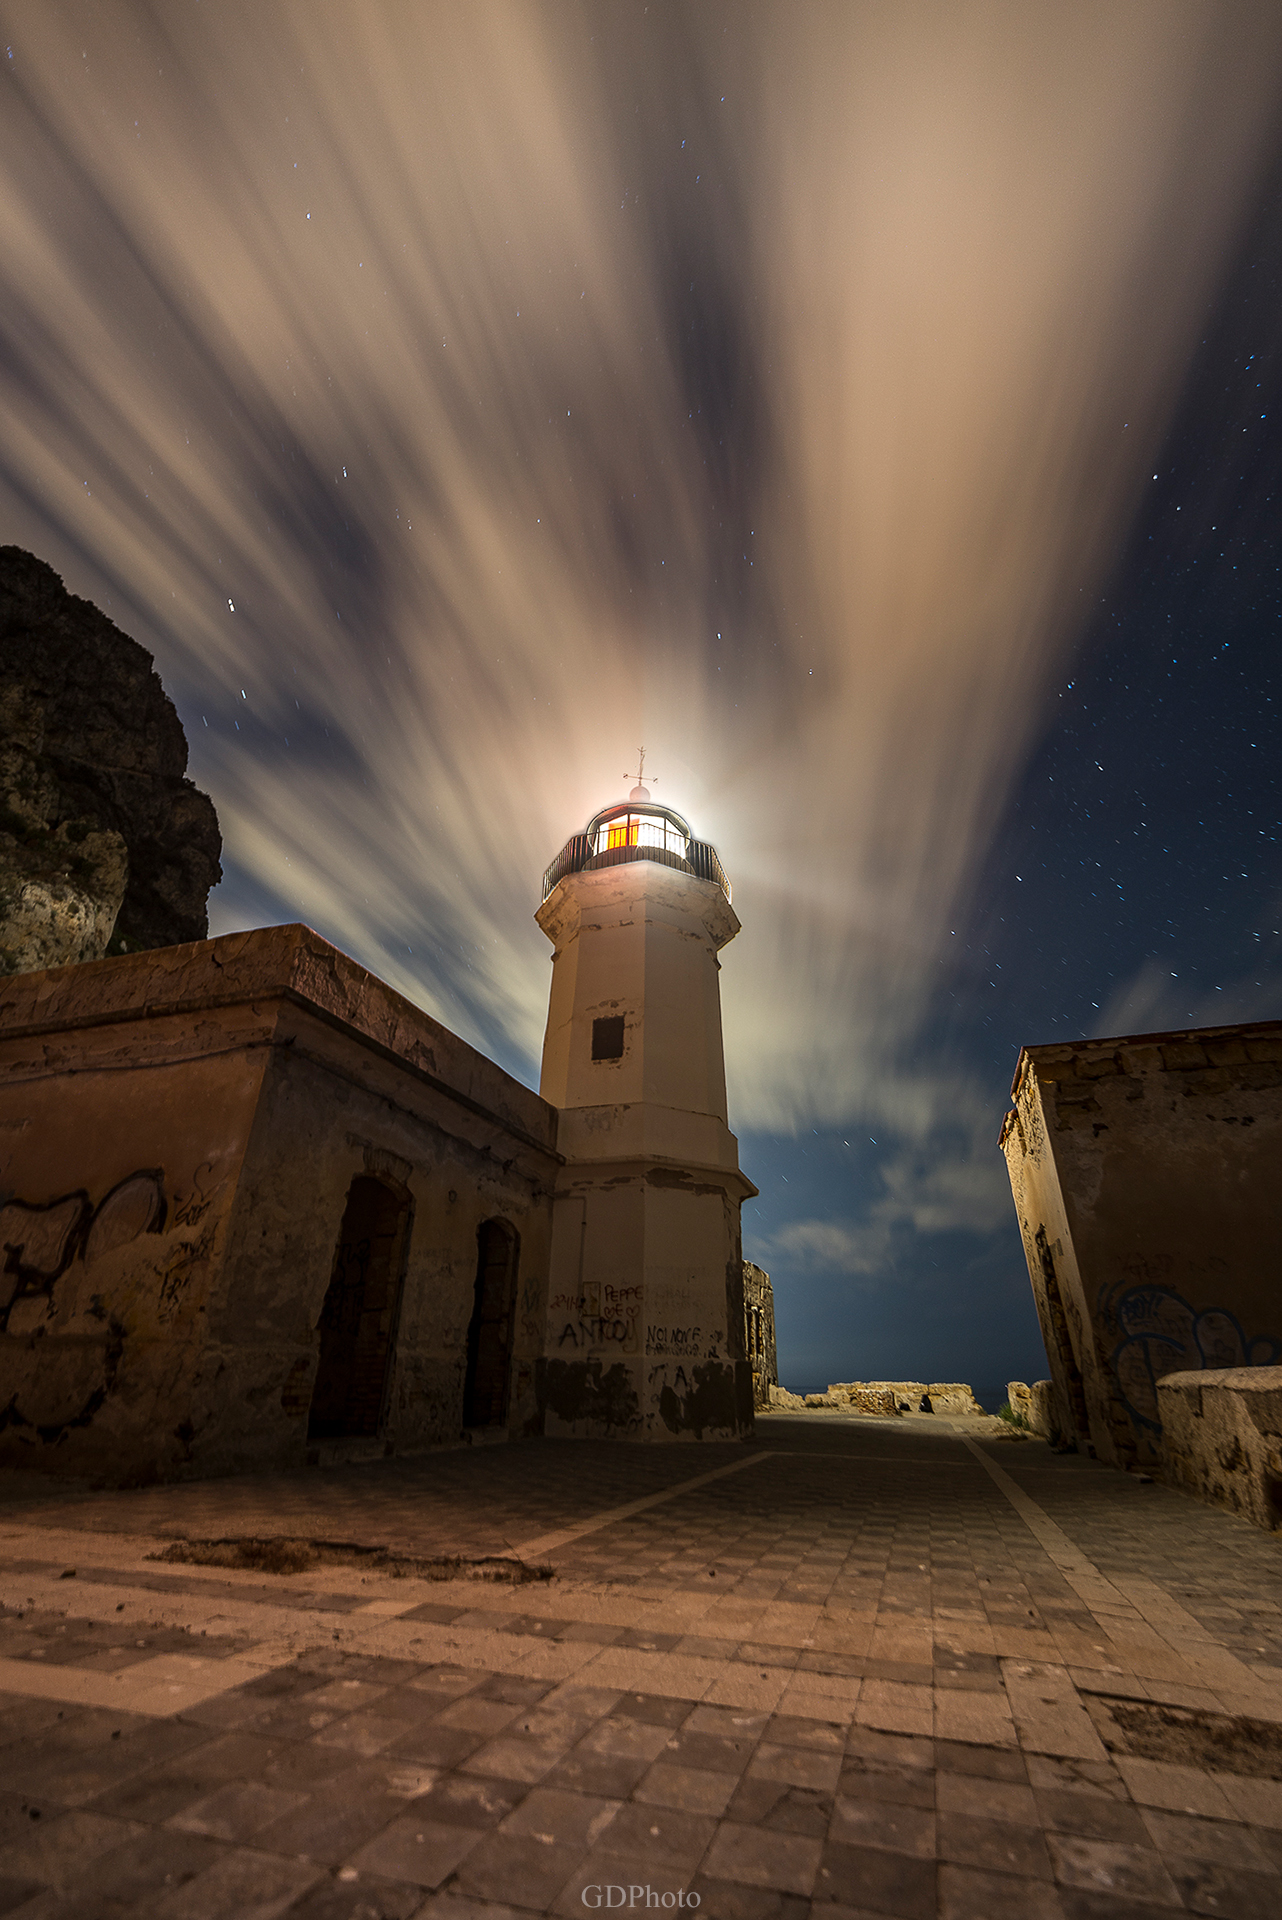 The lighthouse in the night...